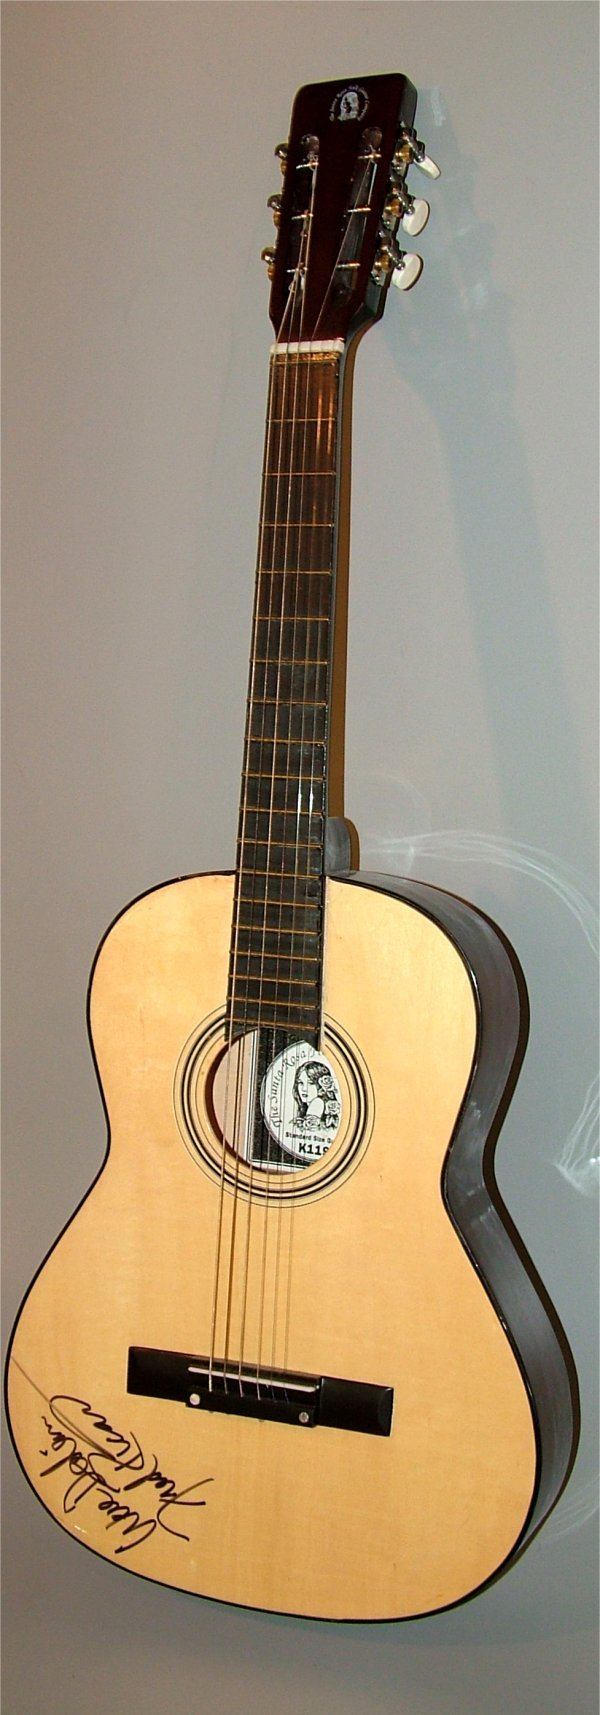 5007: SANTA ROSA FOLK GUITAR MODEL K119, AUTOGRAPHED BY